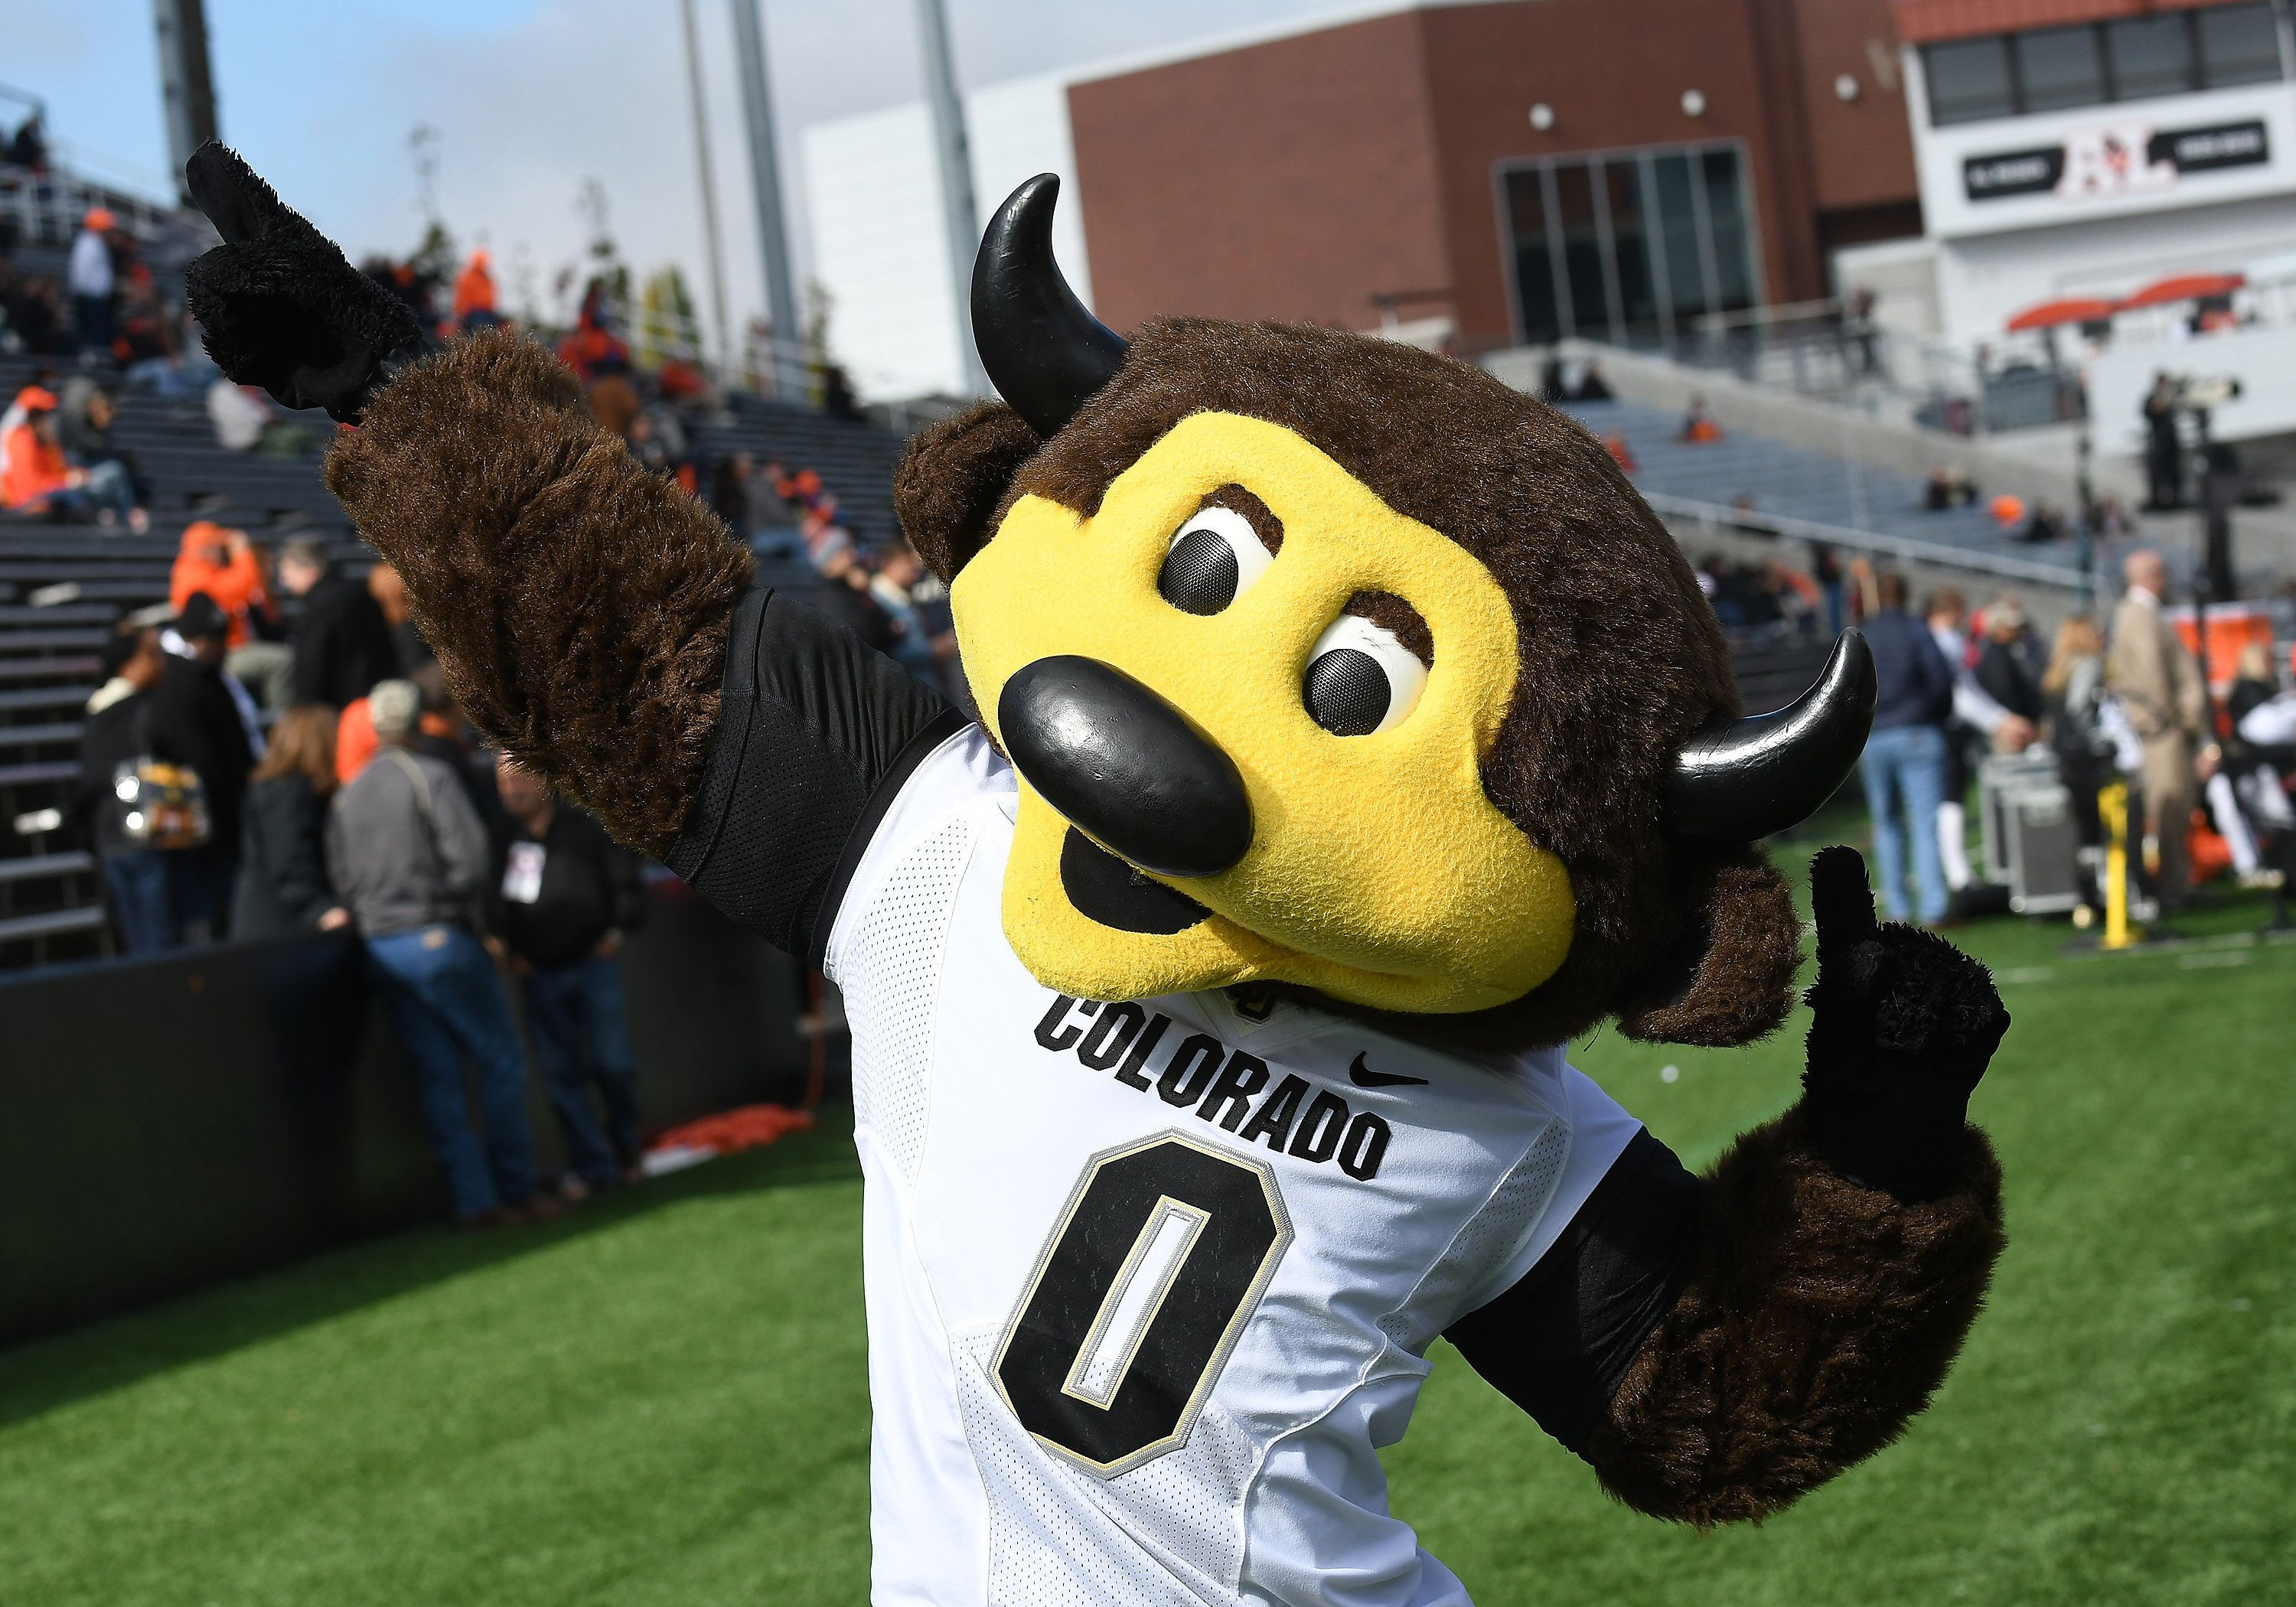 CORVALLIS, OR - OCTOBER 14: The Colorado Buffaloes mascot, Chip, performs on the sideline during a college football game between the Colorado Buffaloes and Oregon State Beavers on October 14, 2017 at Reser Stadium in Corvallis, Oregon. (Photo by Brian Murphy/Icon Sportswire via Getty Images)